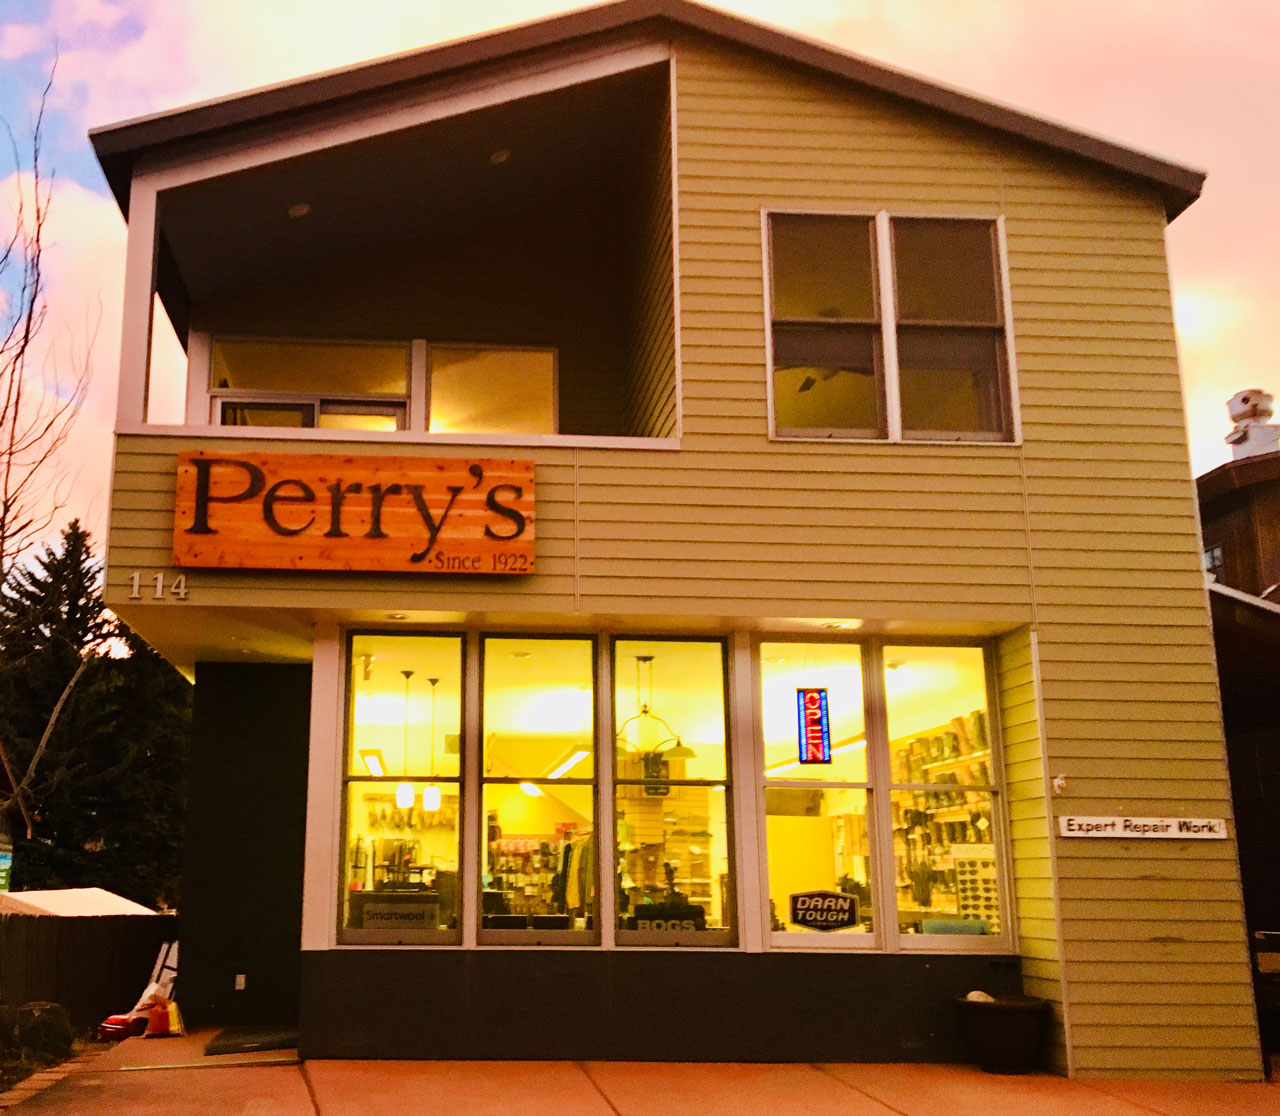 Perry's Shoe Shop